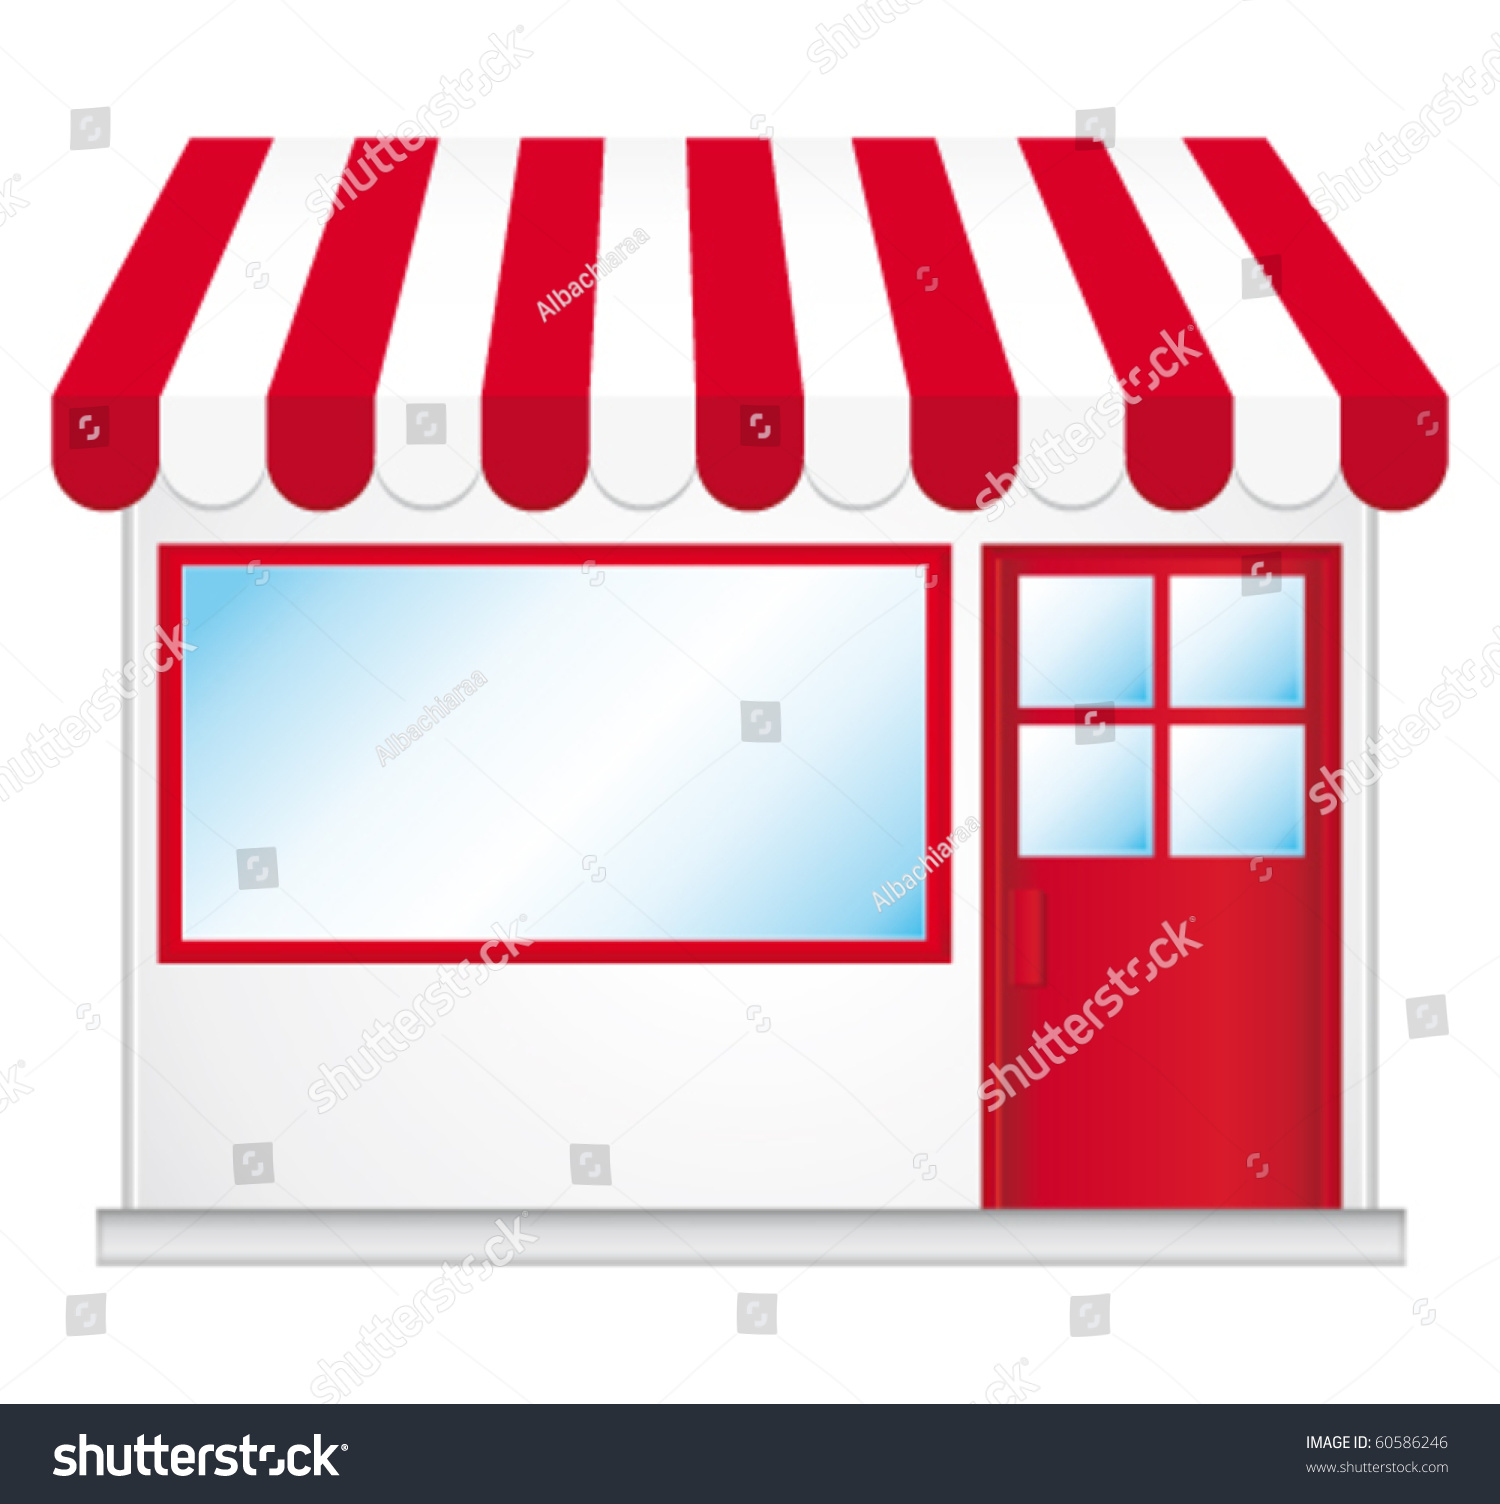 Cute Shop Icon Red Awnings Vector Stock Vector 60586246